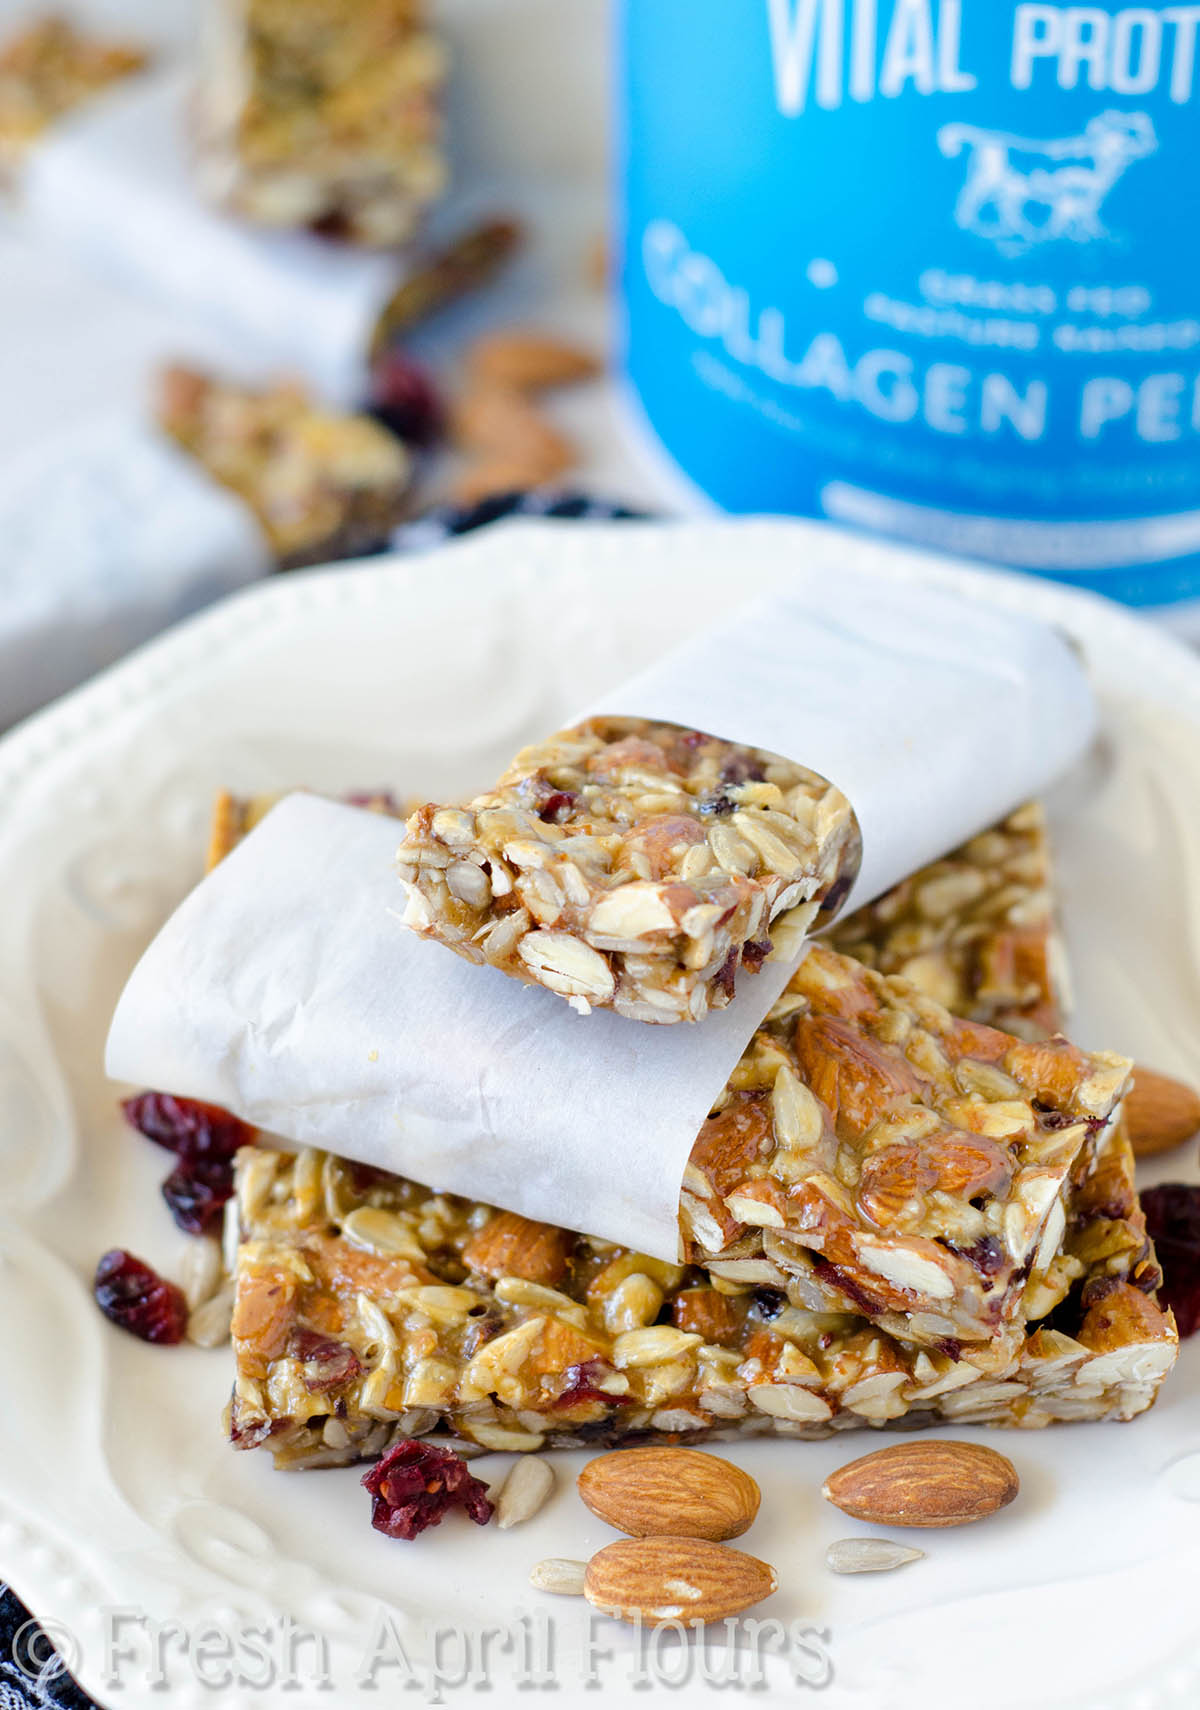 Cranberry Almond Vanilla Protein Bars